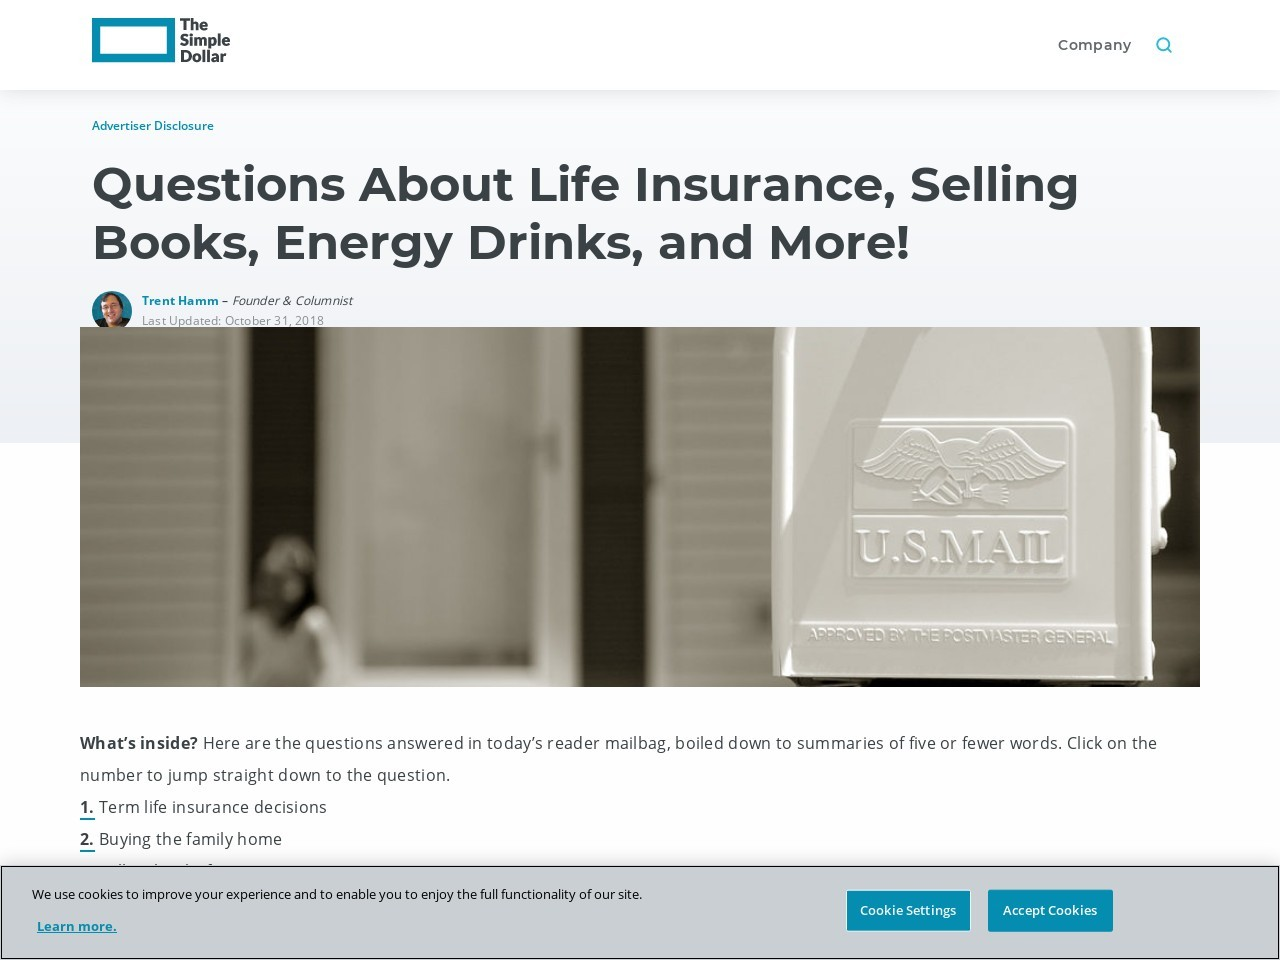 Questions About Life Insurance, Selling Books, Energy Drinks, and More!